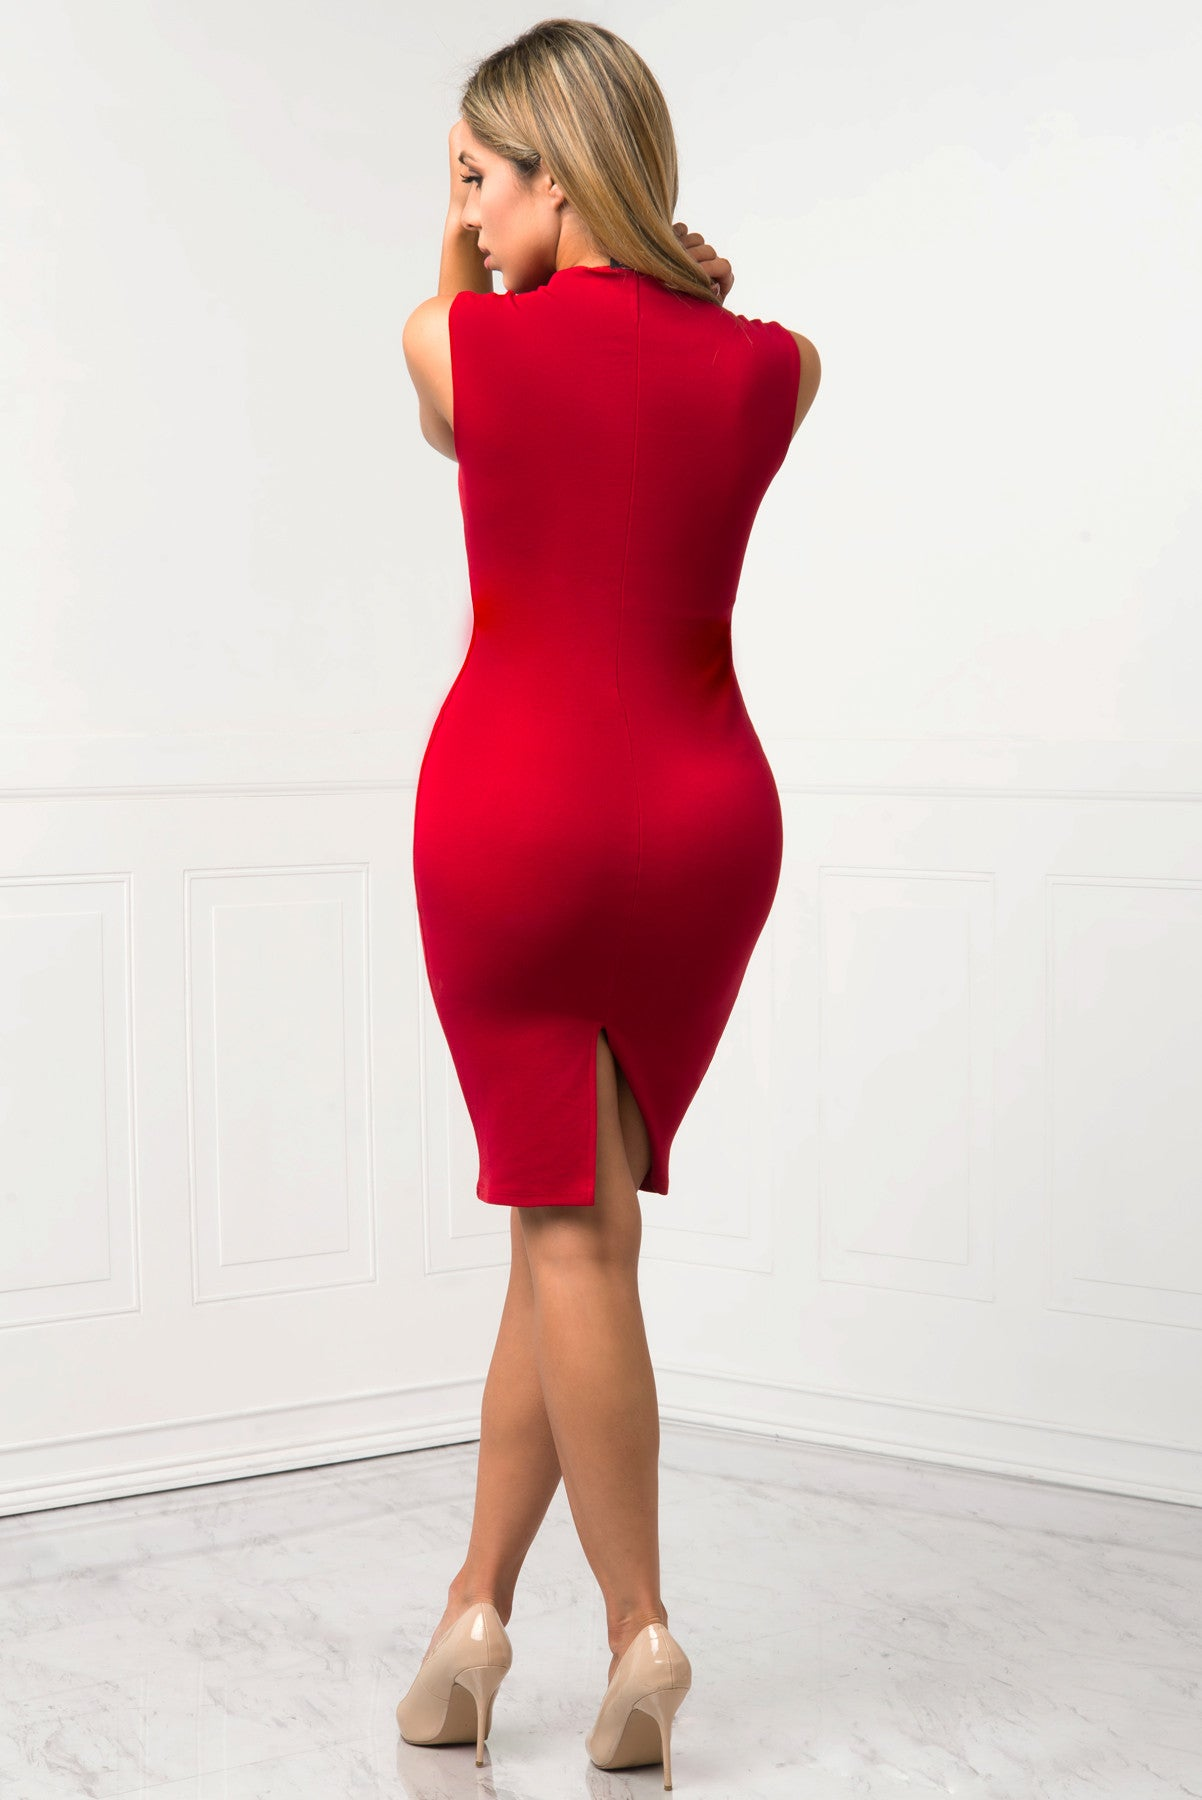 Danielle Red Dress - Fashion Effect Store  - 3